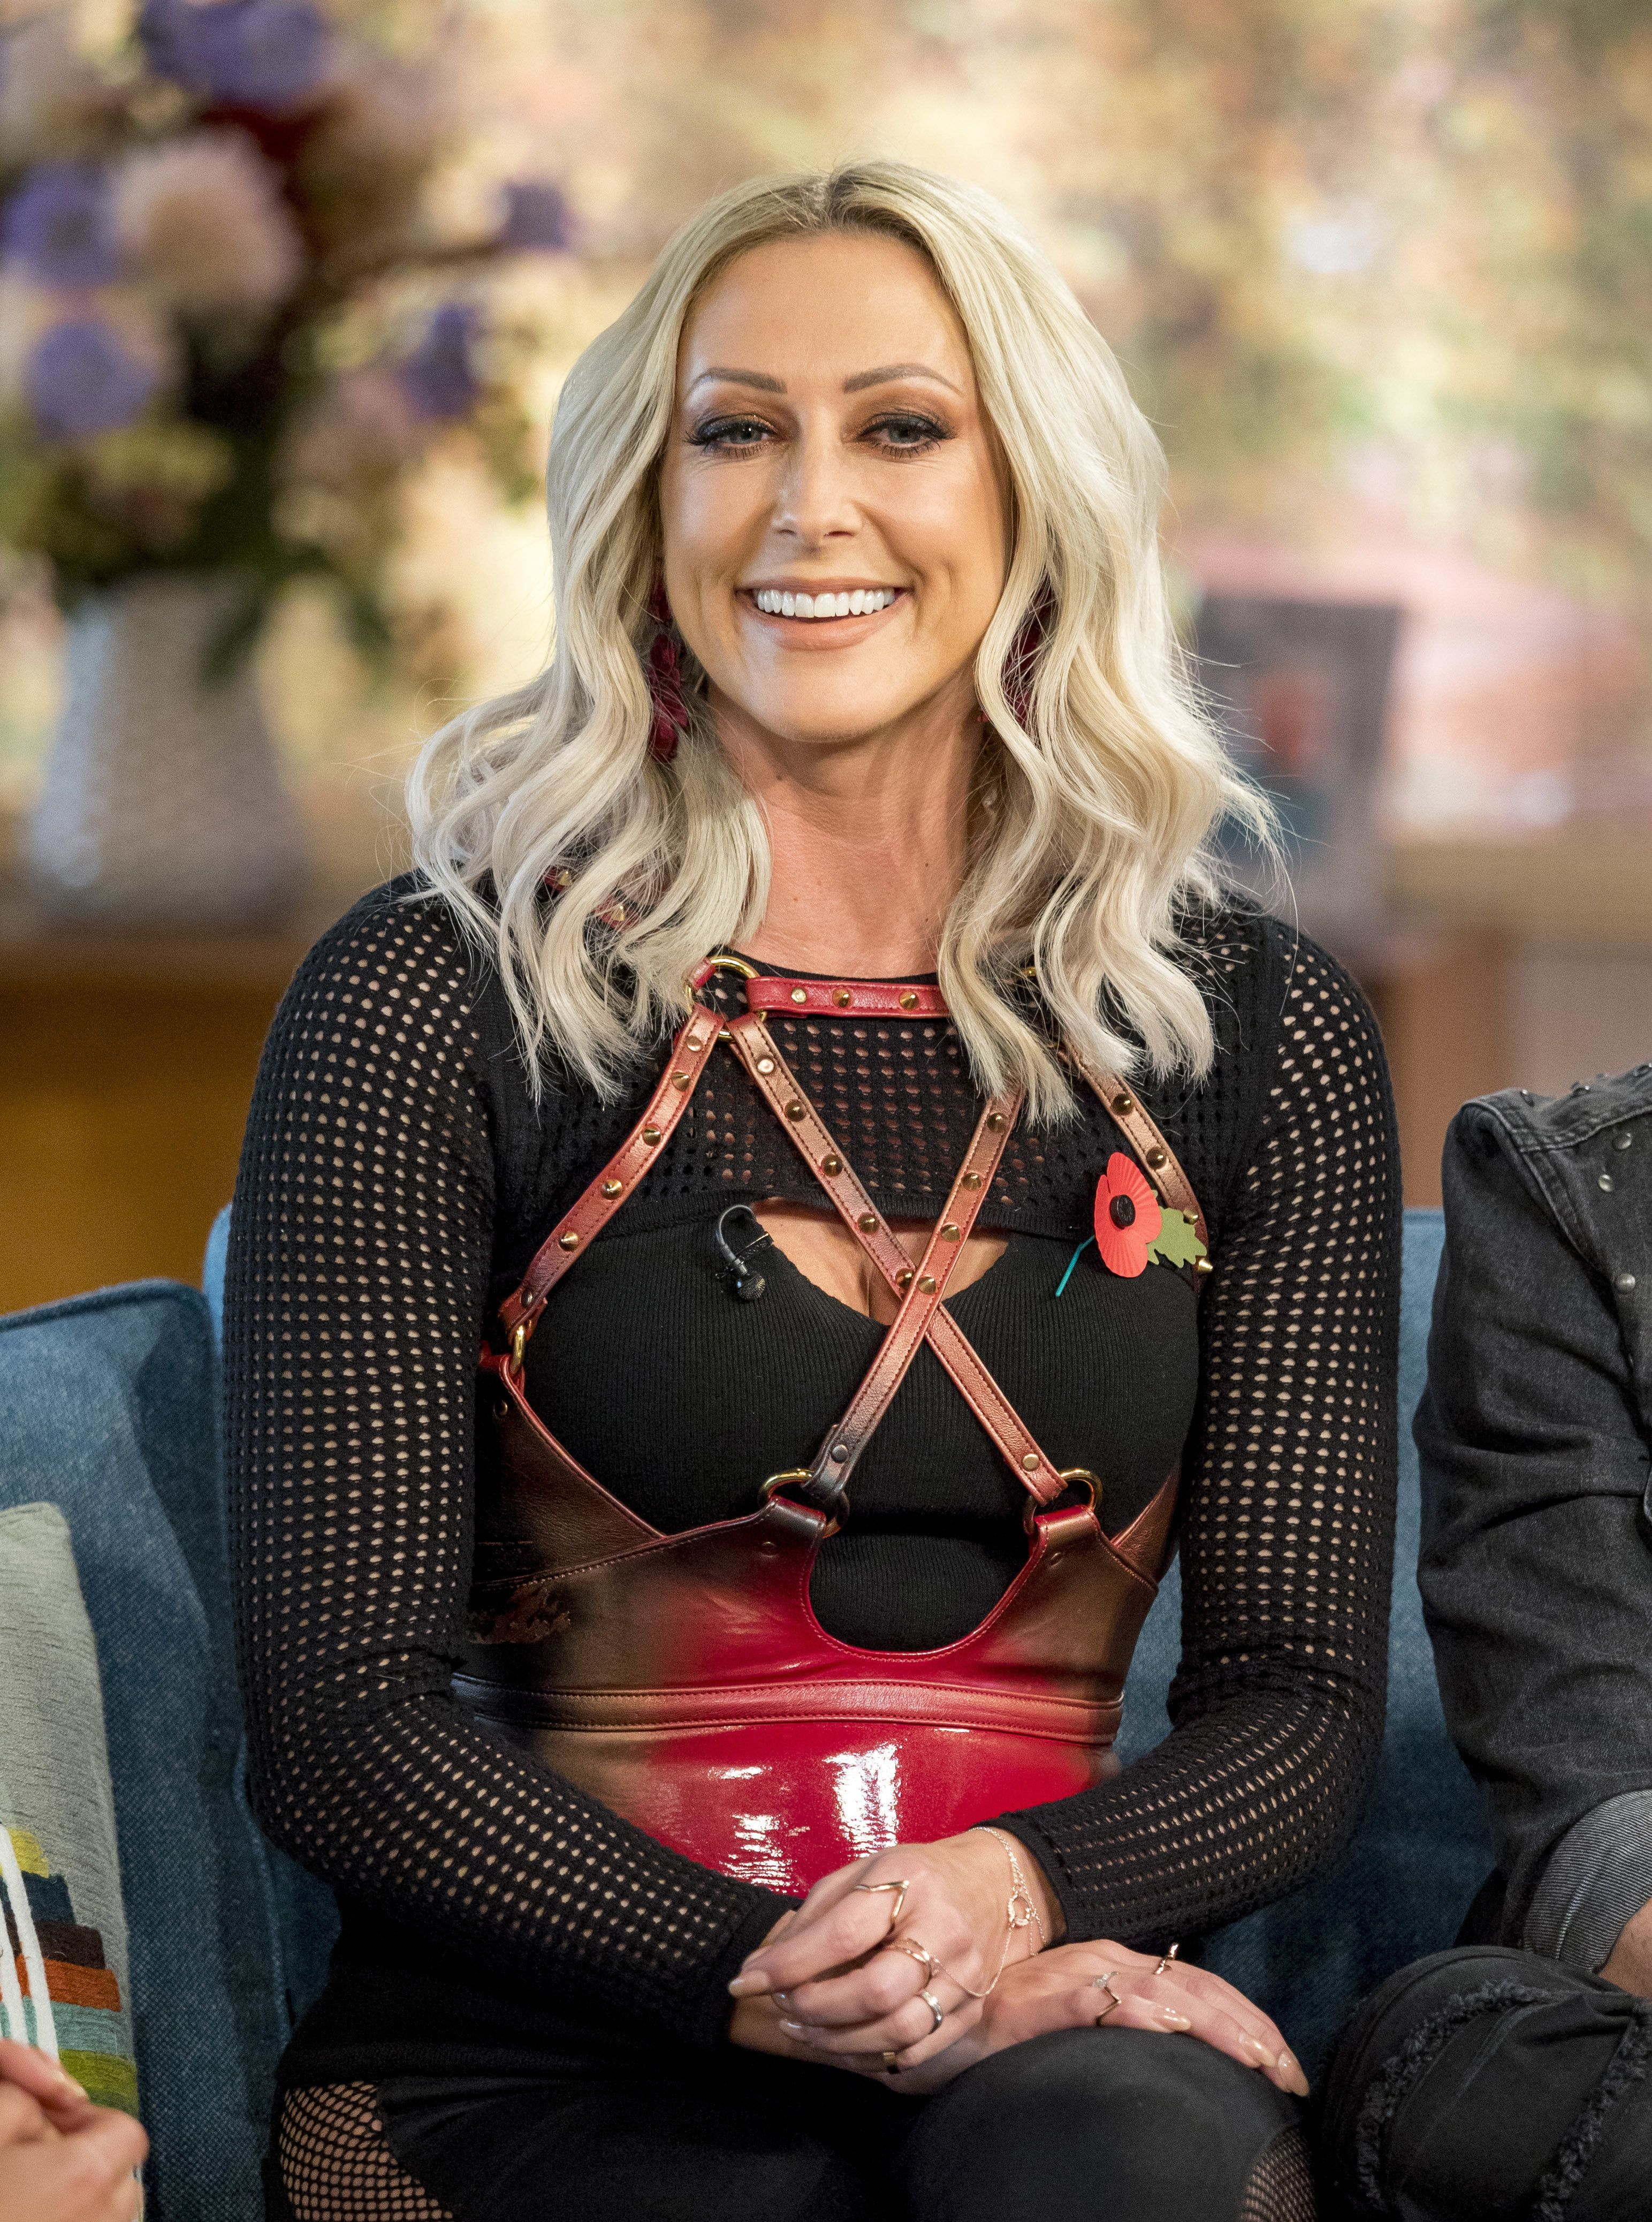 STRICTLY: Faye Tozer And Danny John-Jules Are The Latest Celebs Confirmed For The New